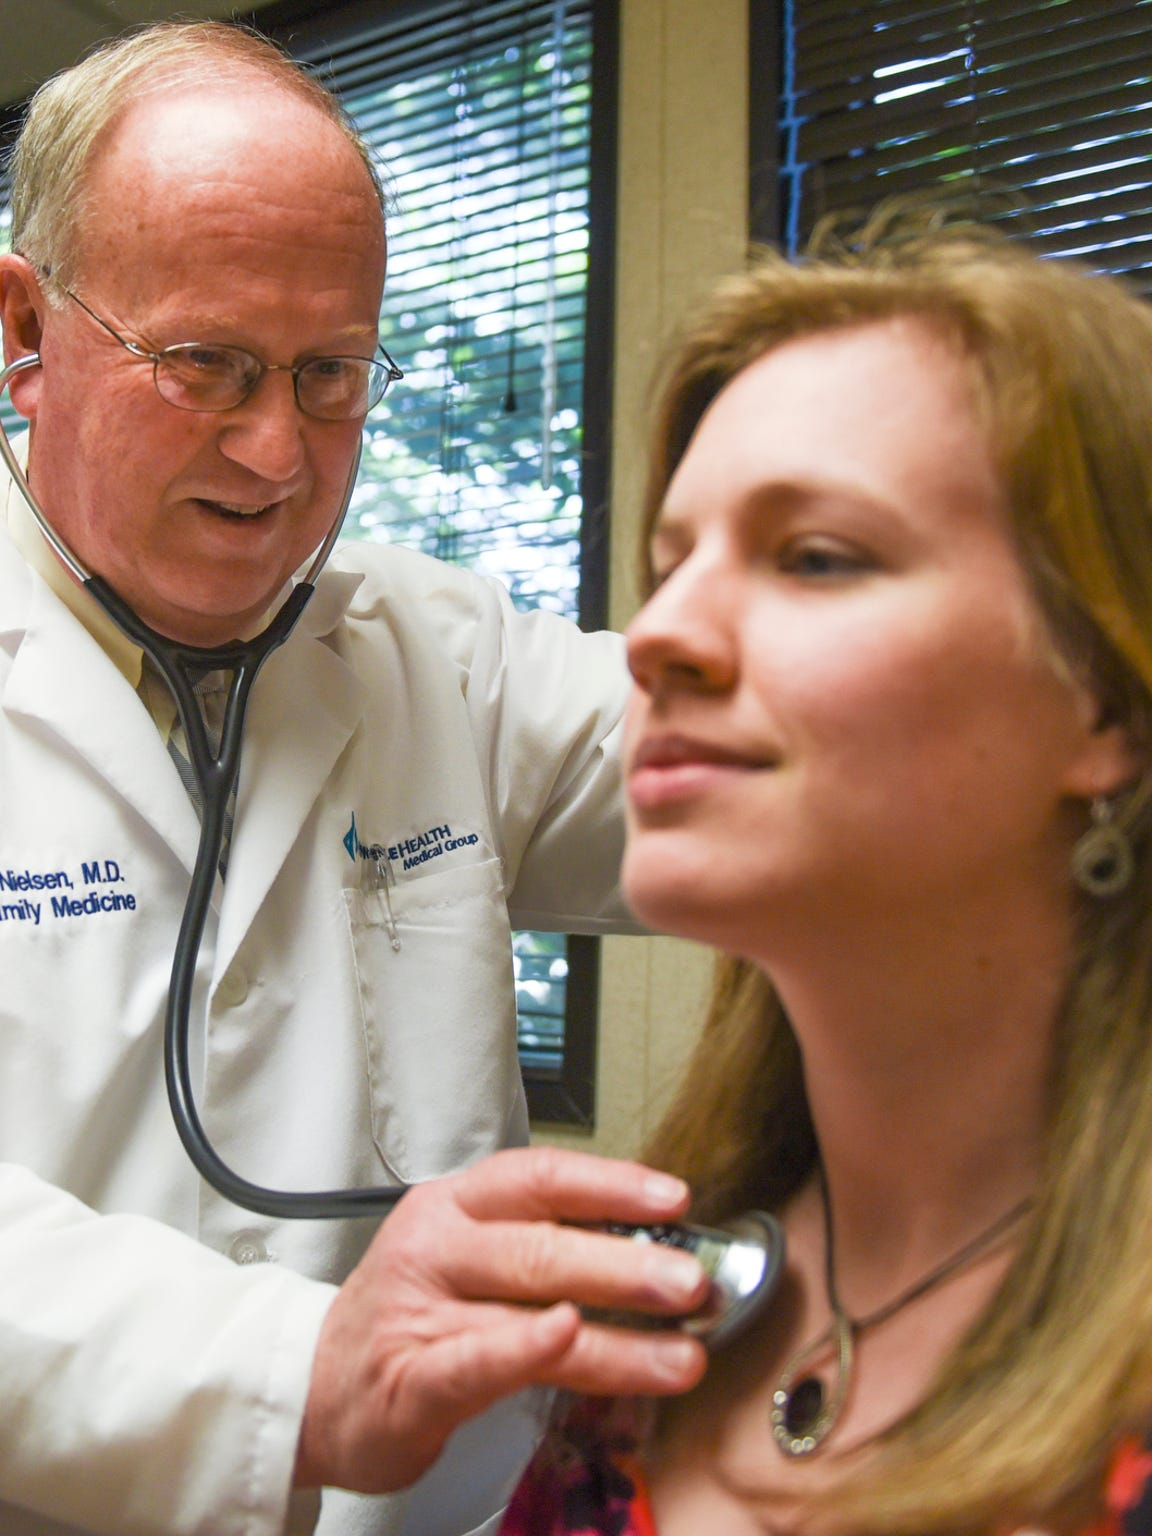 Dr. Robert Nielsen, a founding partner in Annville Family Medicine, demonstrates how to use a stethoscope on nurse practitioner Emily Brandt at the office on Tuesday, June 7, 2016.  Annville Family Medicine became part of Pinnacle Health at the beginning of 2015.